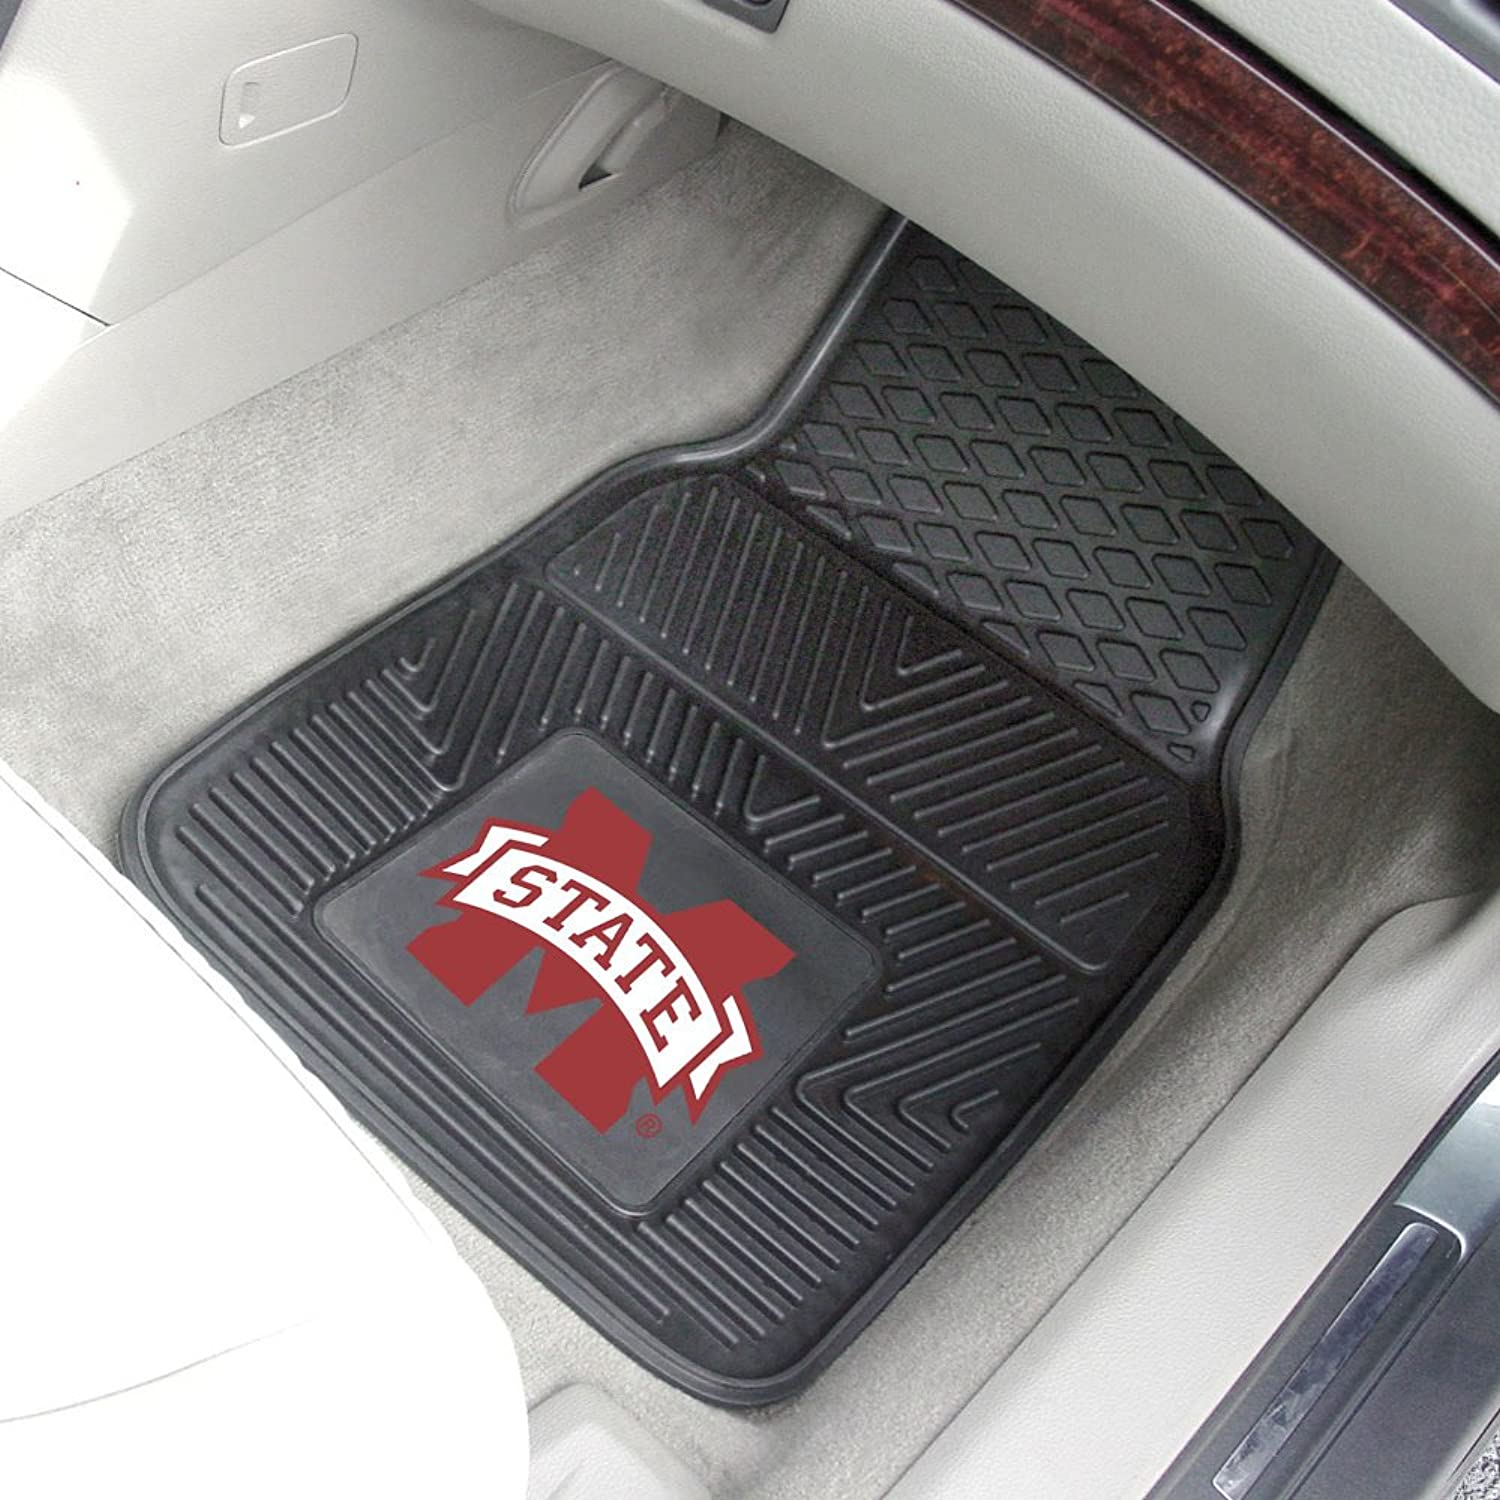 Fanmats Home Indoor Sports Team Logo Mississippi State Heavy Duty 2Piece Vinyl Car Mats 18 x27